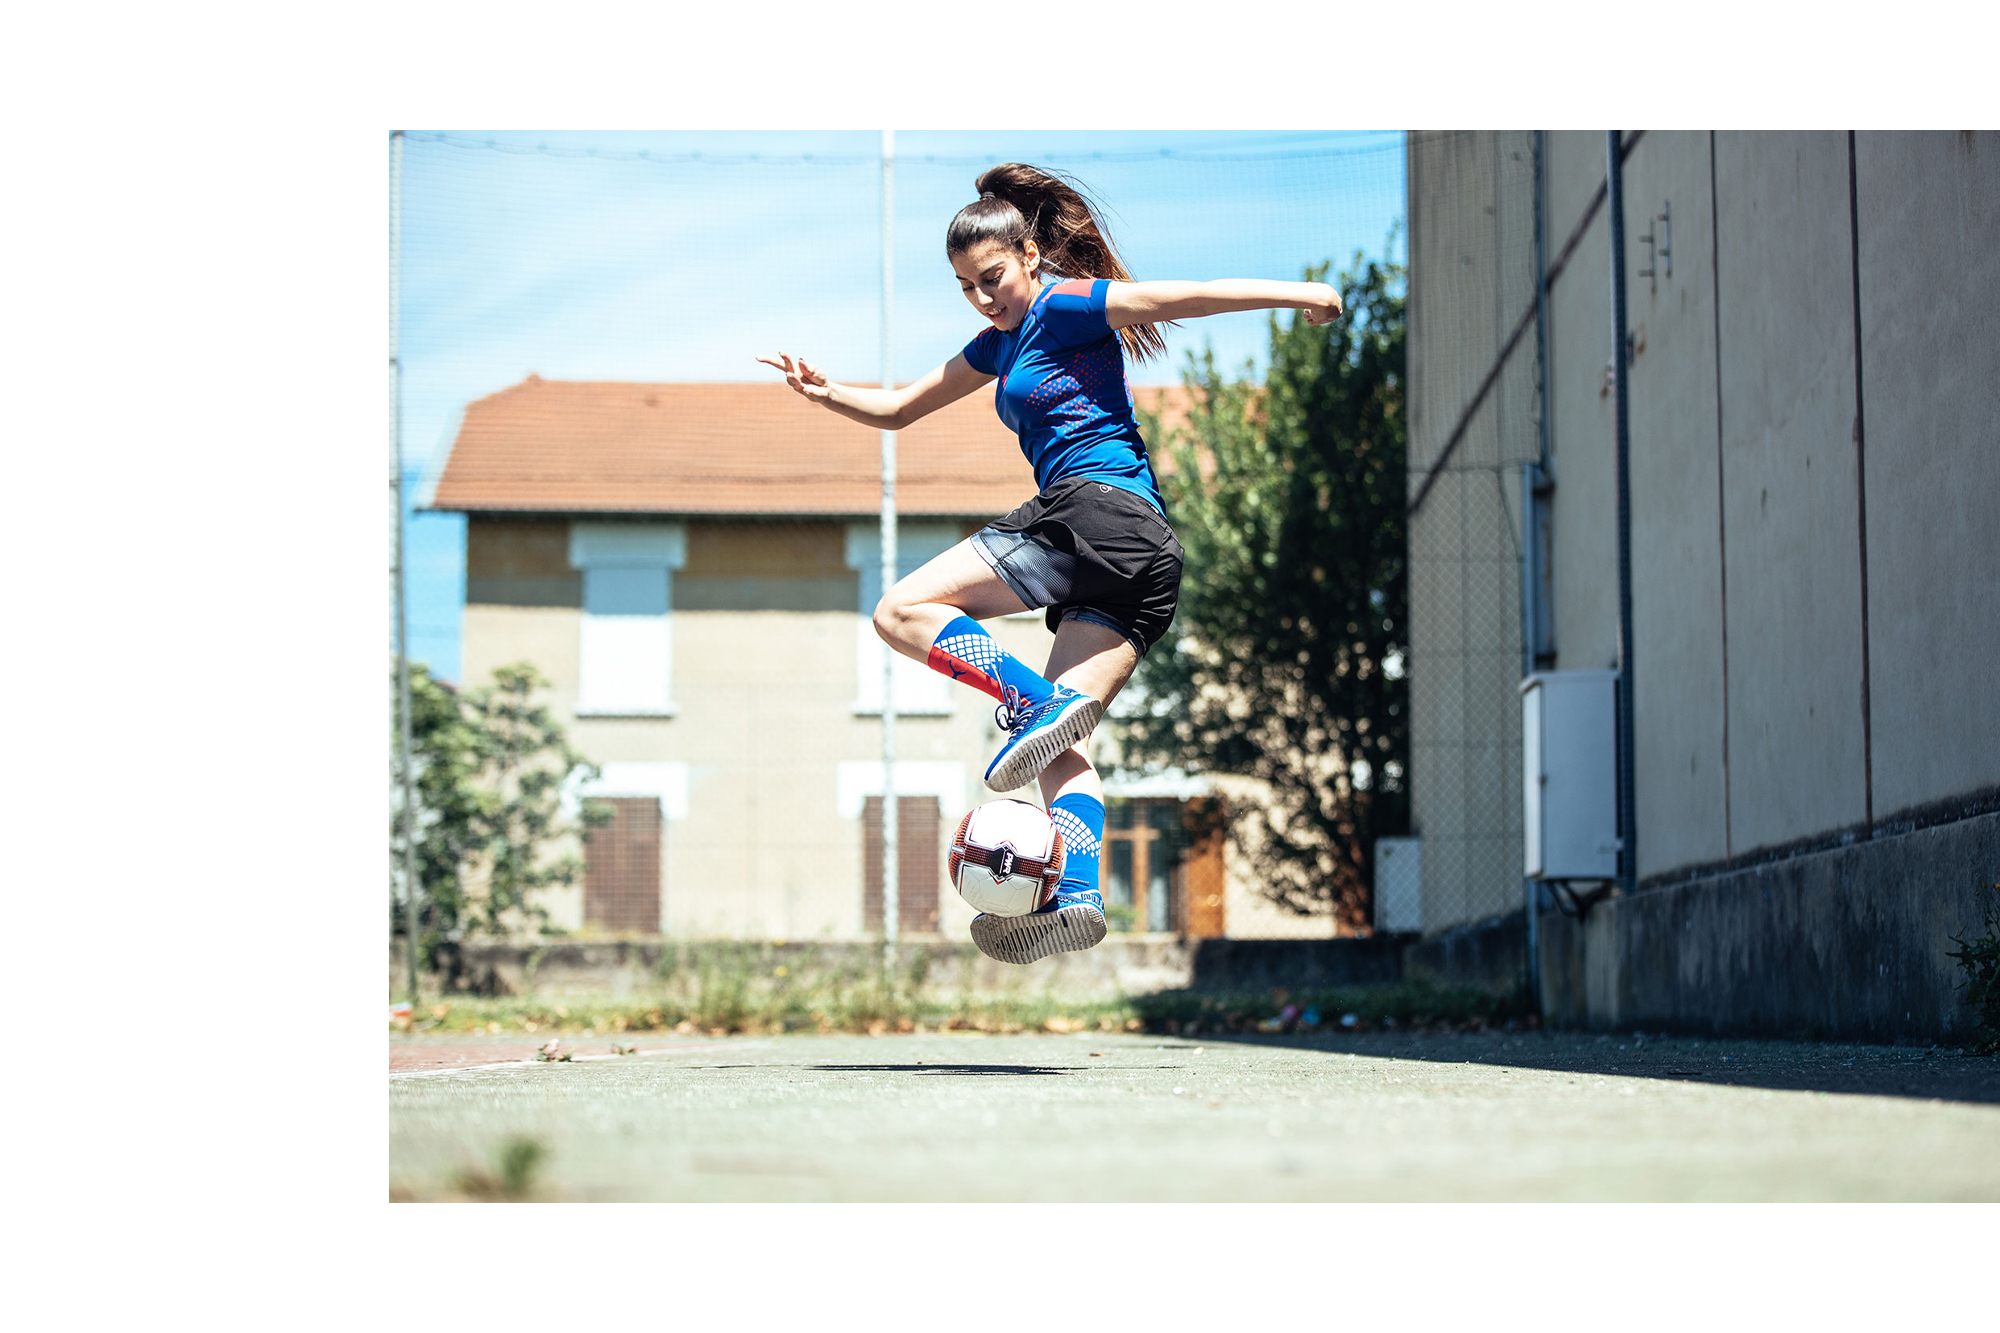 Lisa Freestyle puma football soccer  Brenton Salo Photography